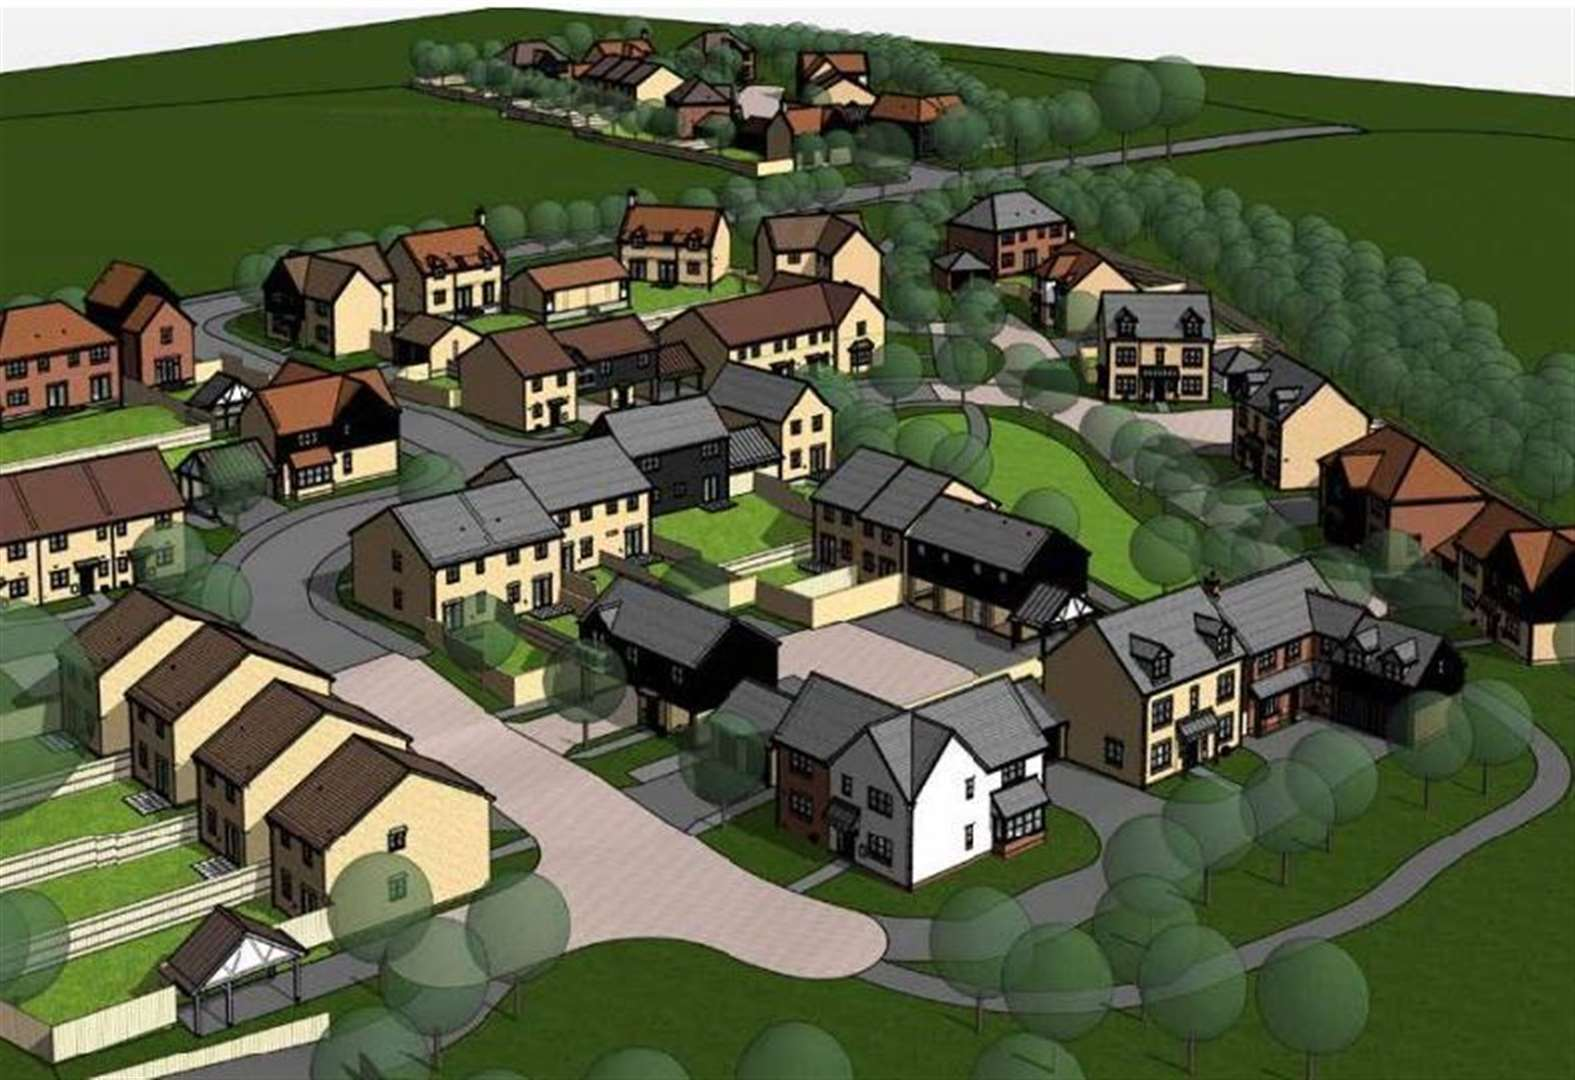 Controversy as 55 new homes approved for Linton after tight vote